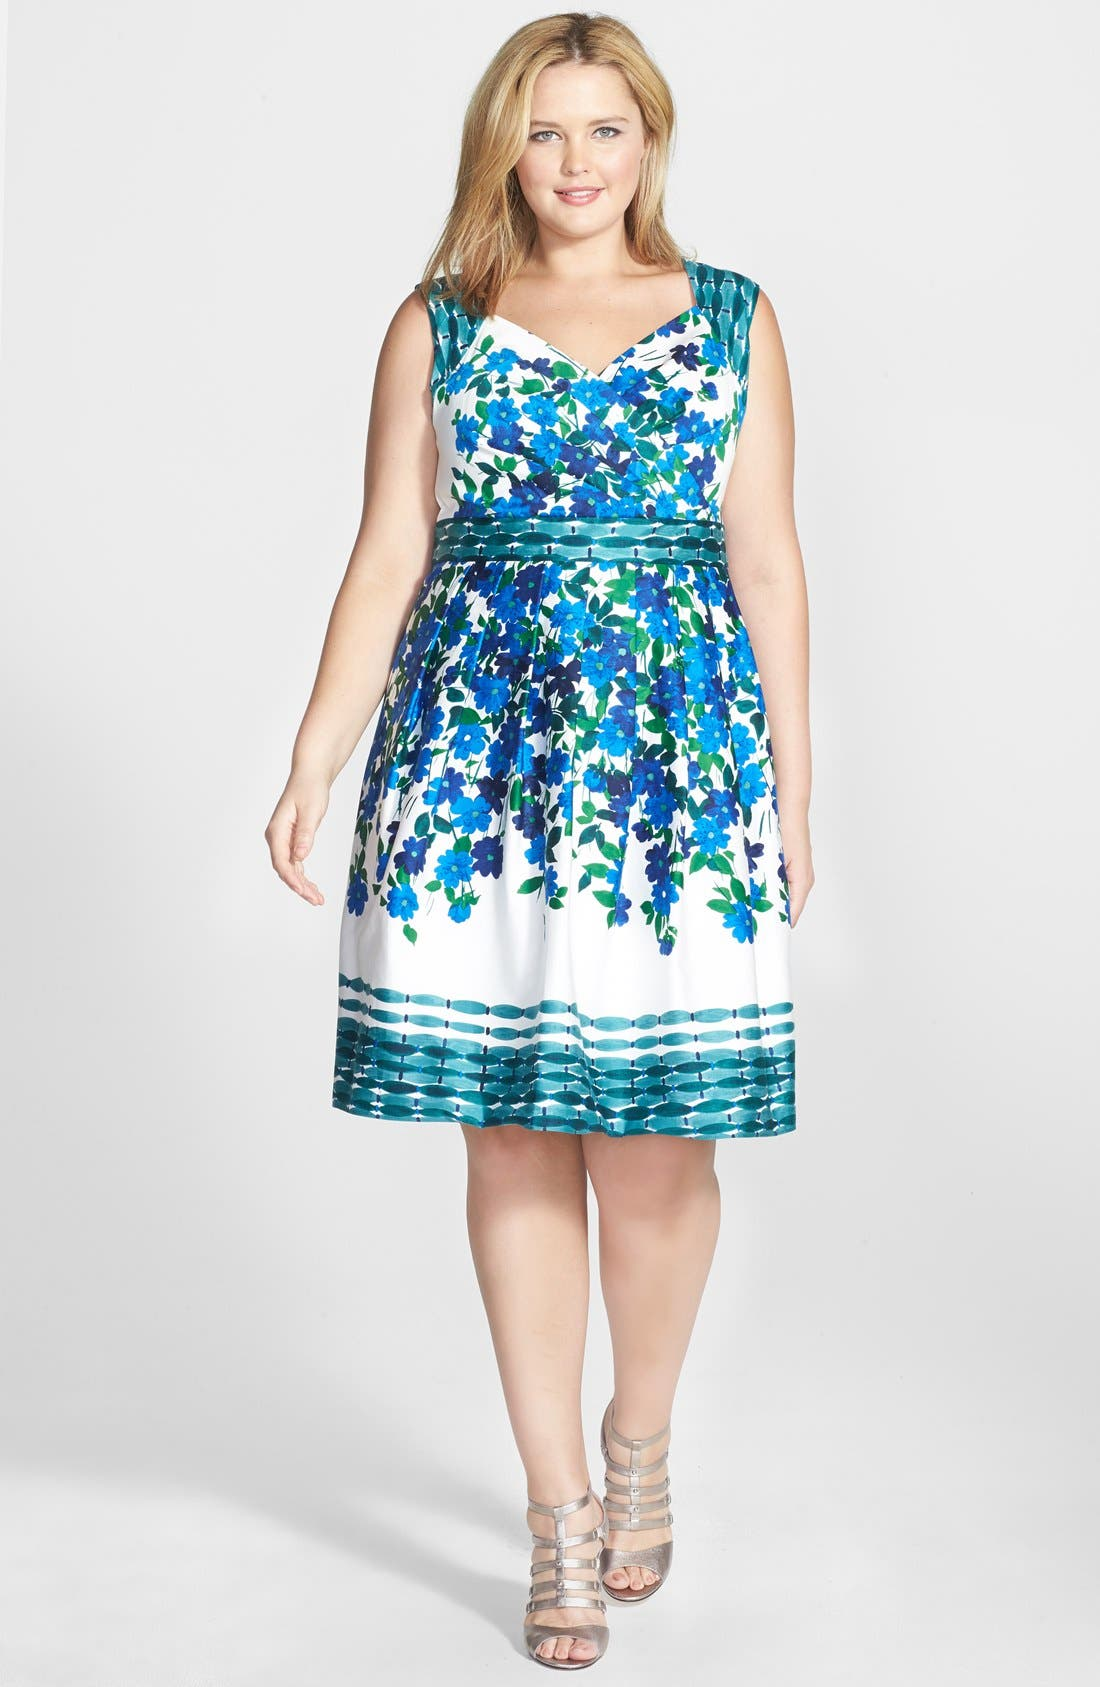 Alternate Image 1 Selected - Adrianna Papell Floral Print Stretch Cotton Fit & Flare Dress (Plus Size)